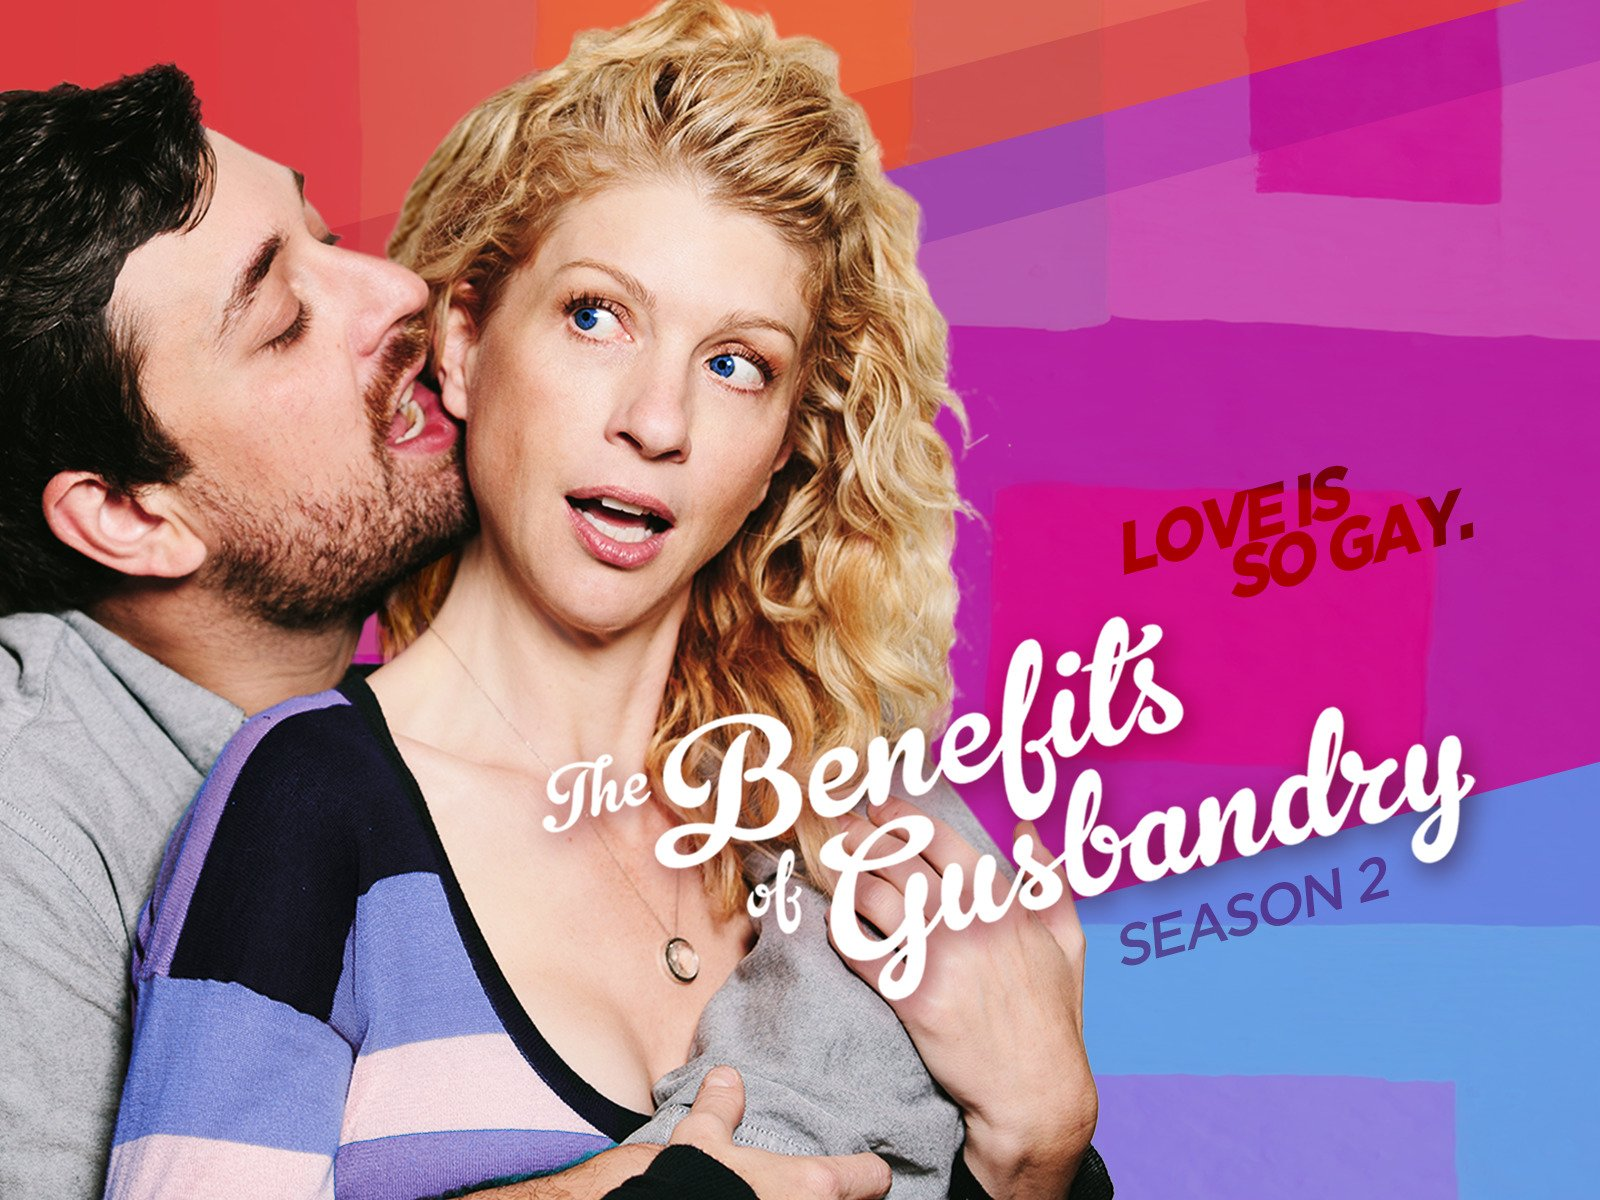 The Benefits of Gusbandry - Season 2